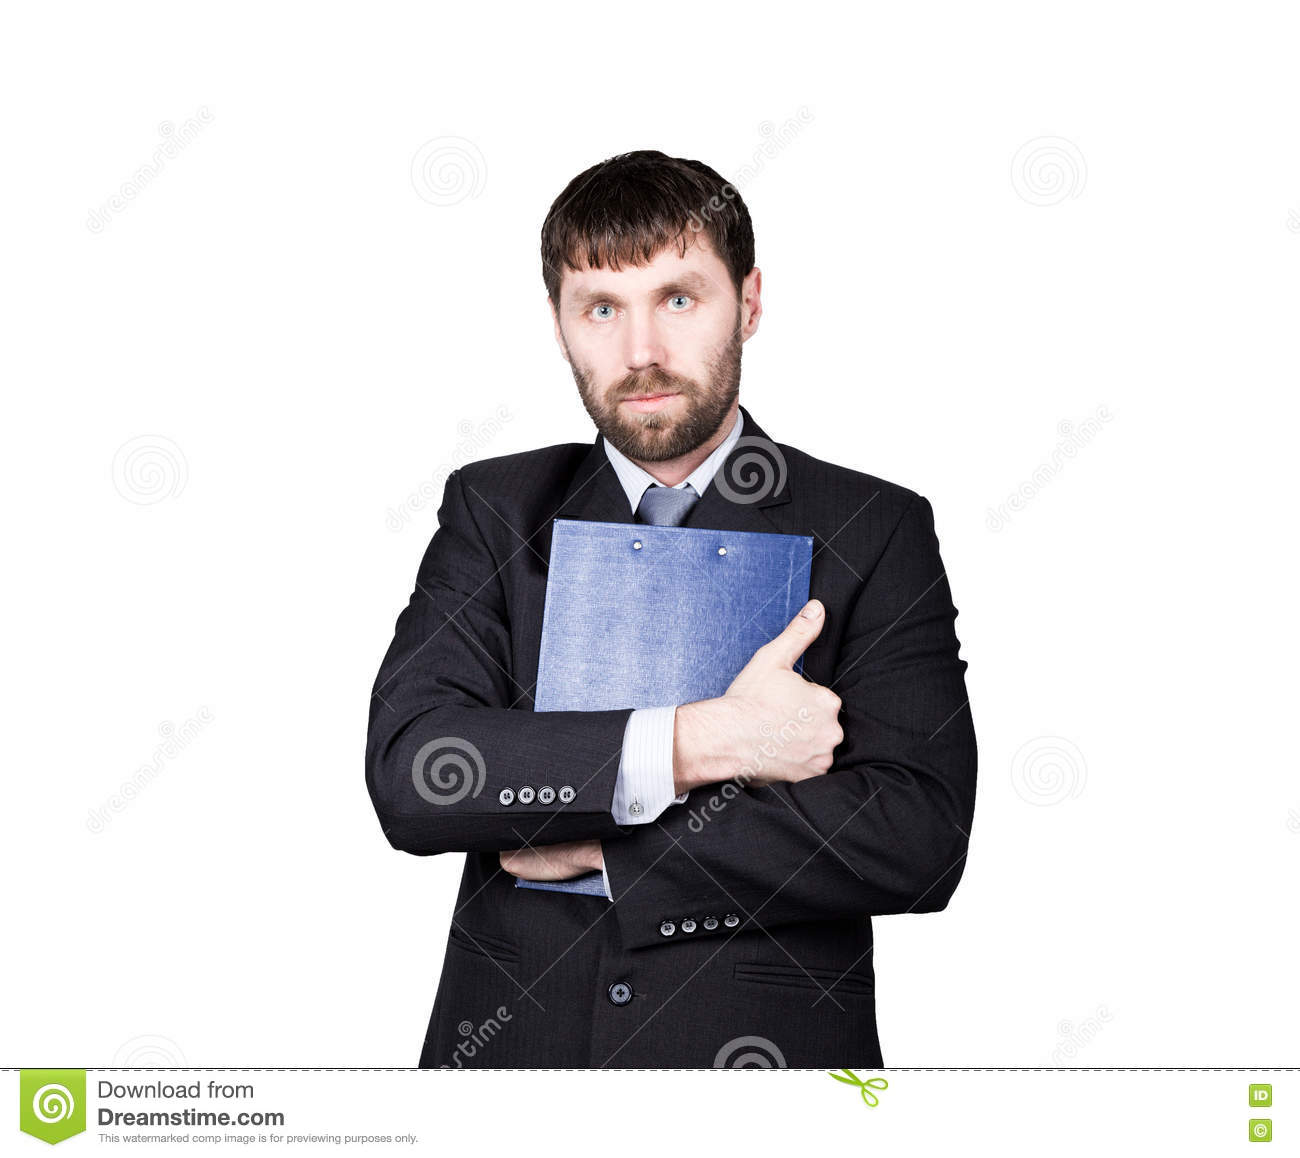 Gestures Distrust Lies  Body Language  Man In Business Suit